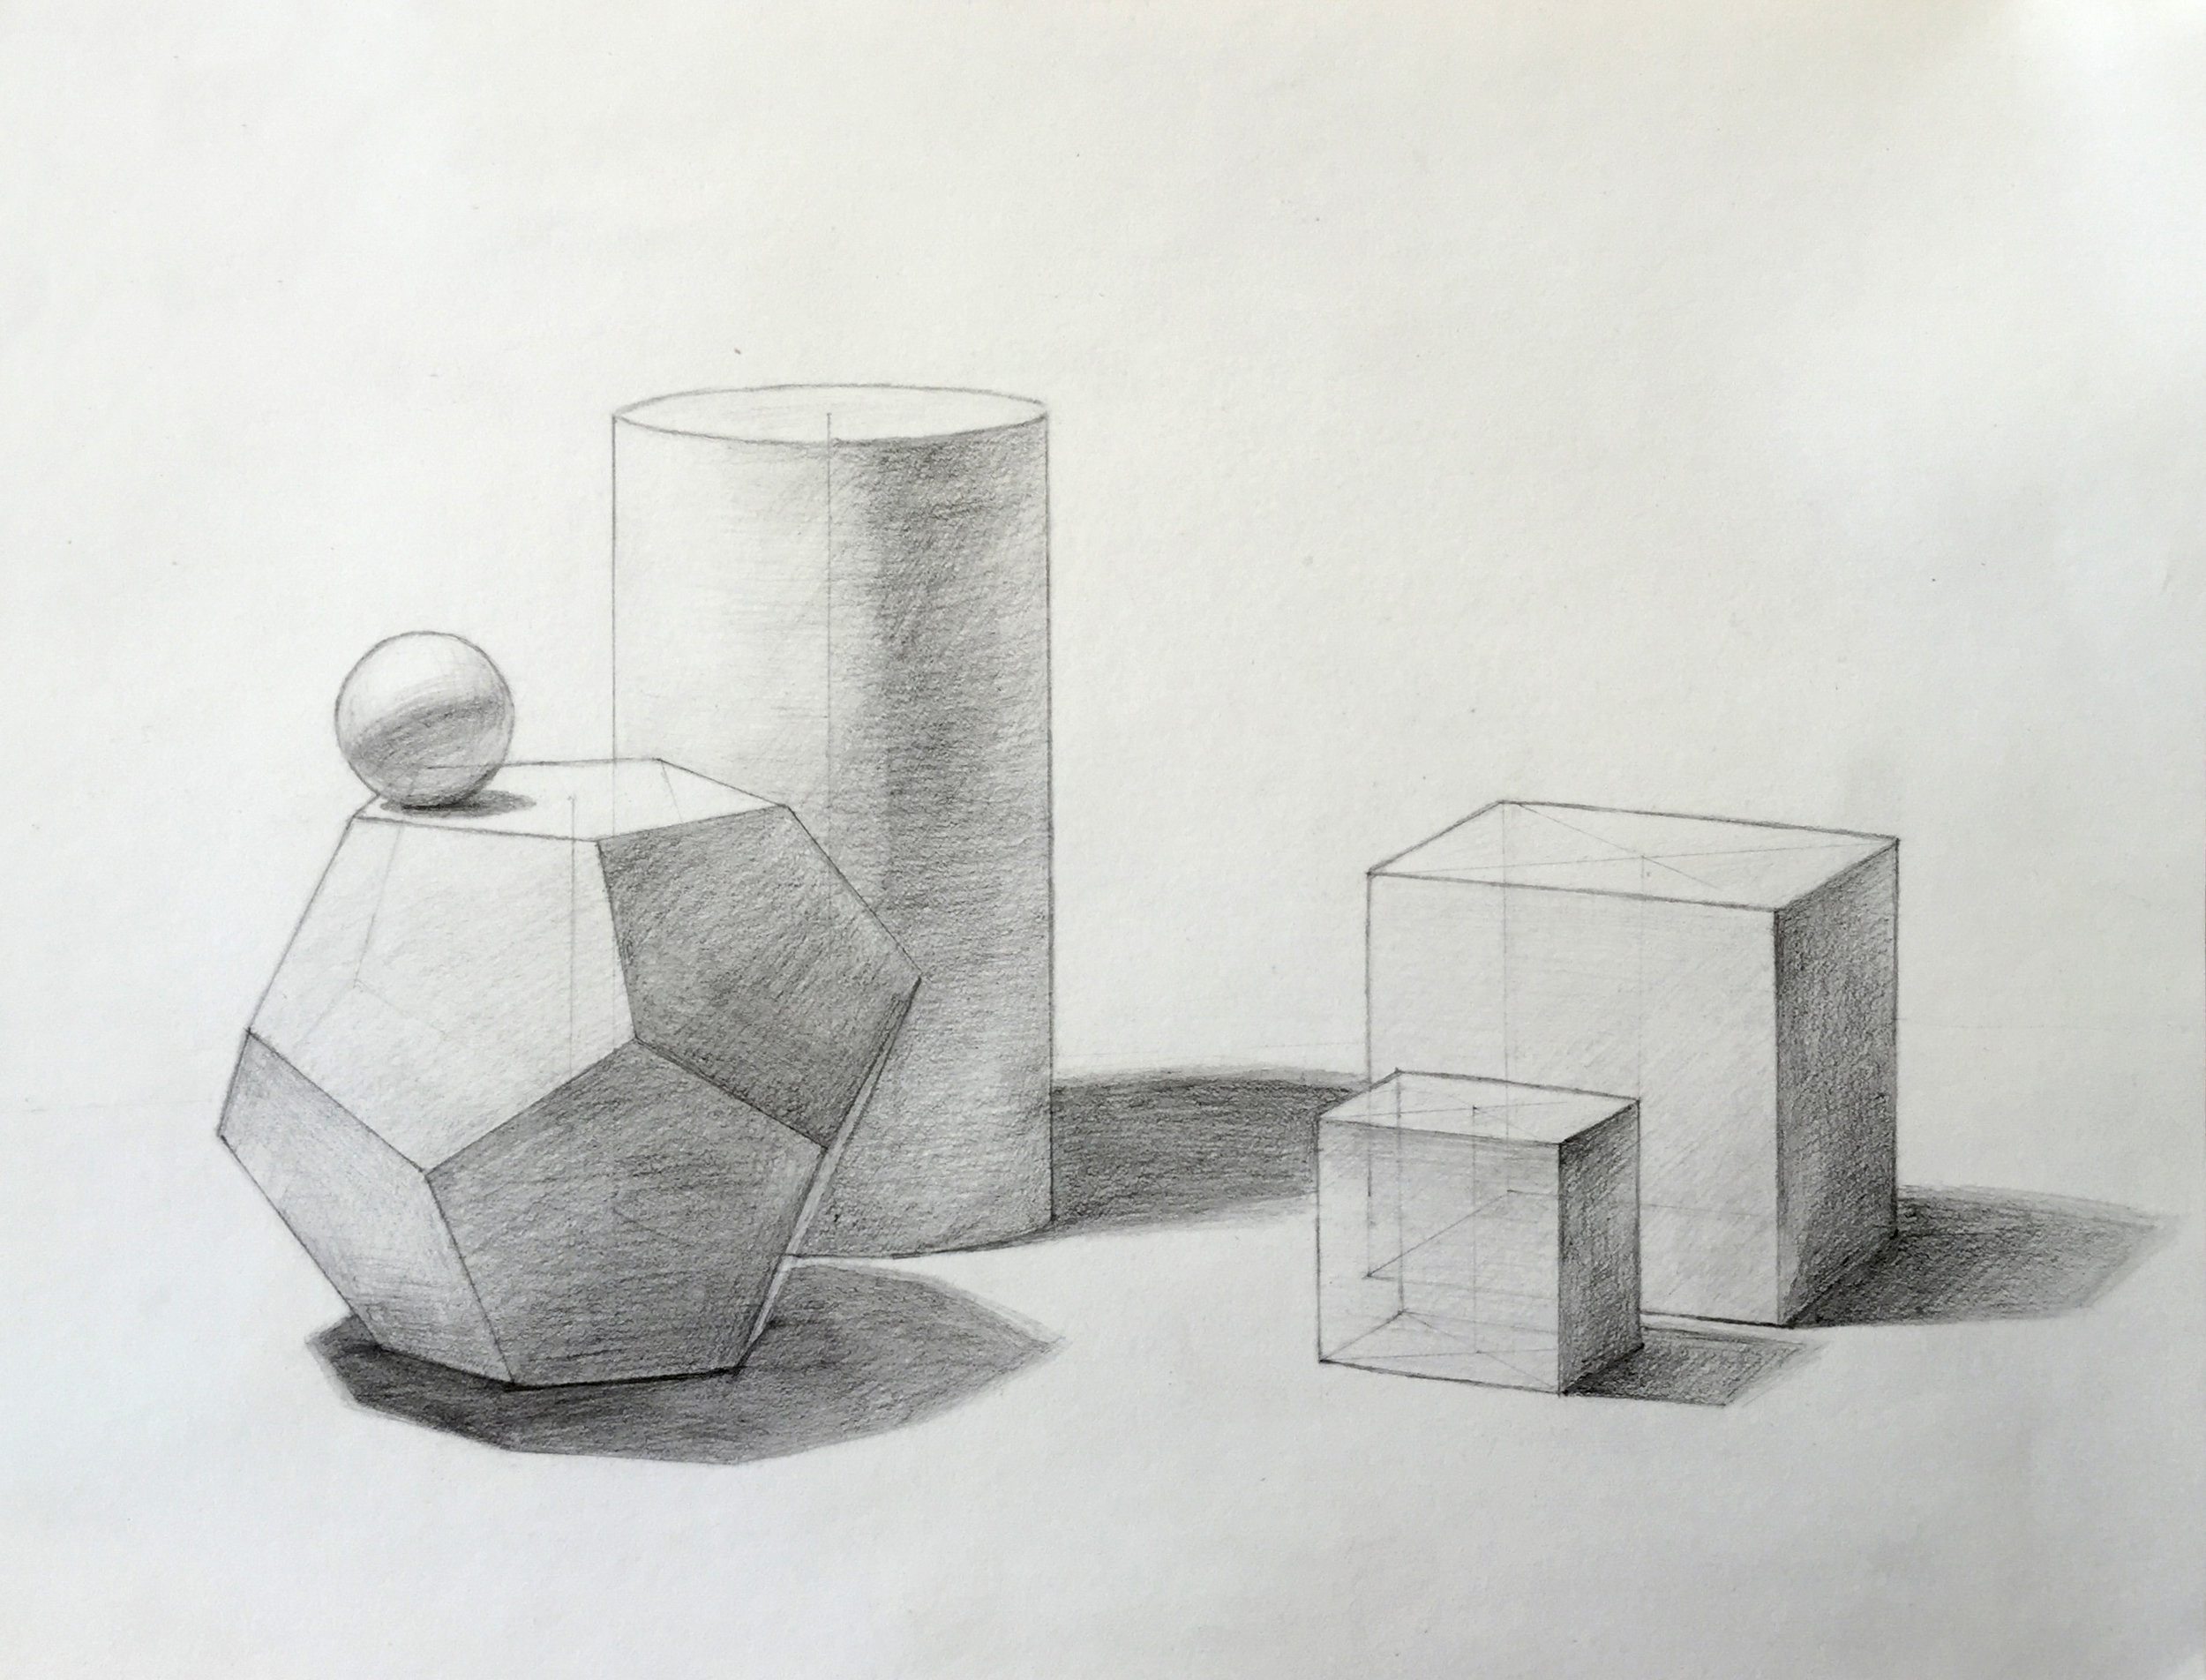 Observational Study - Geometric Solids